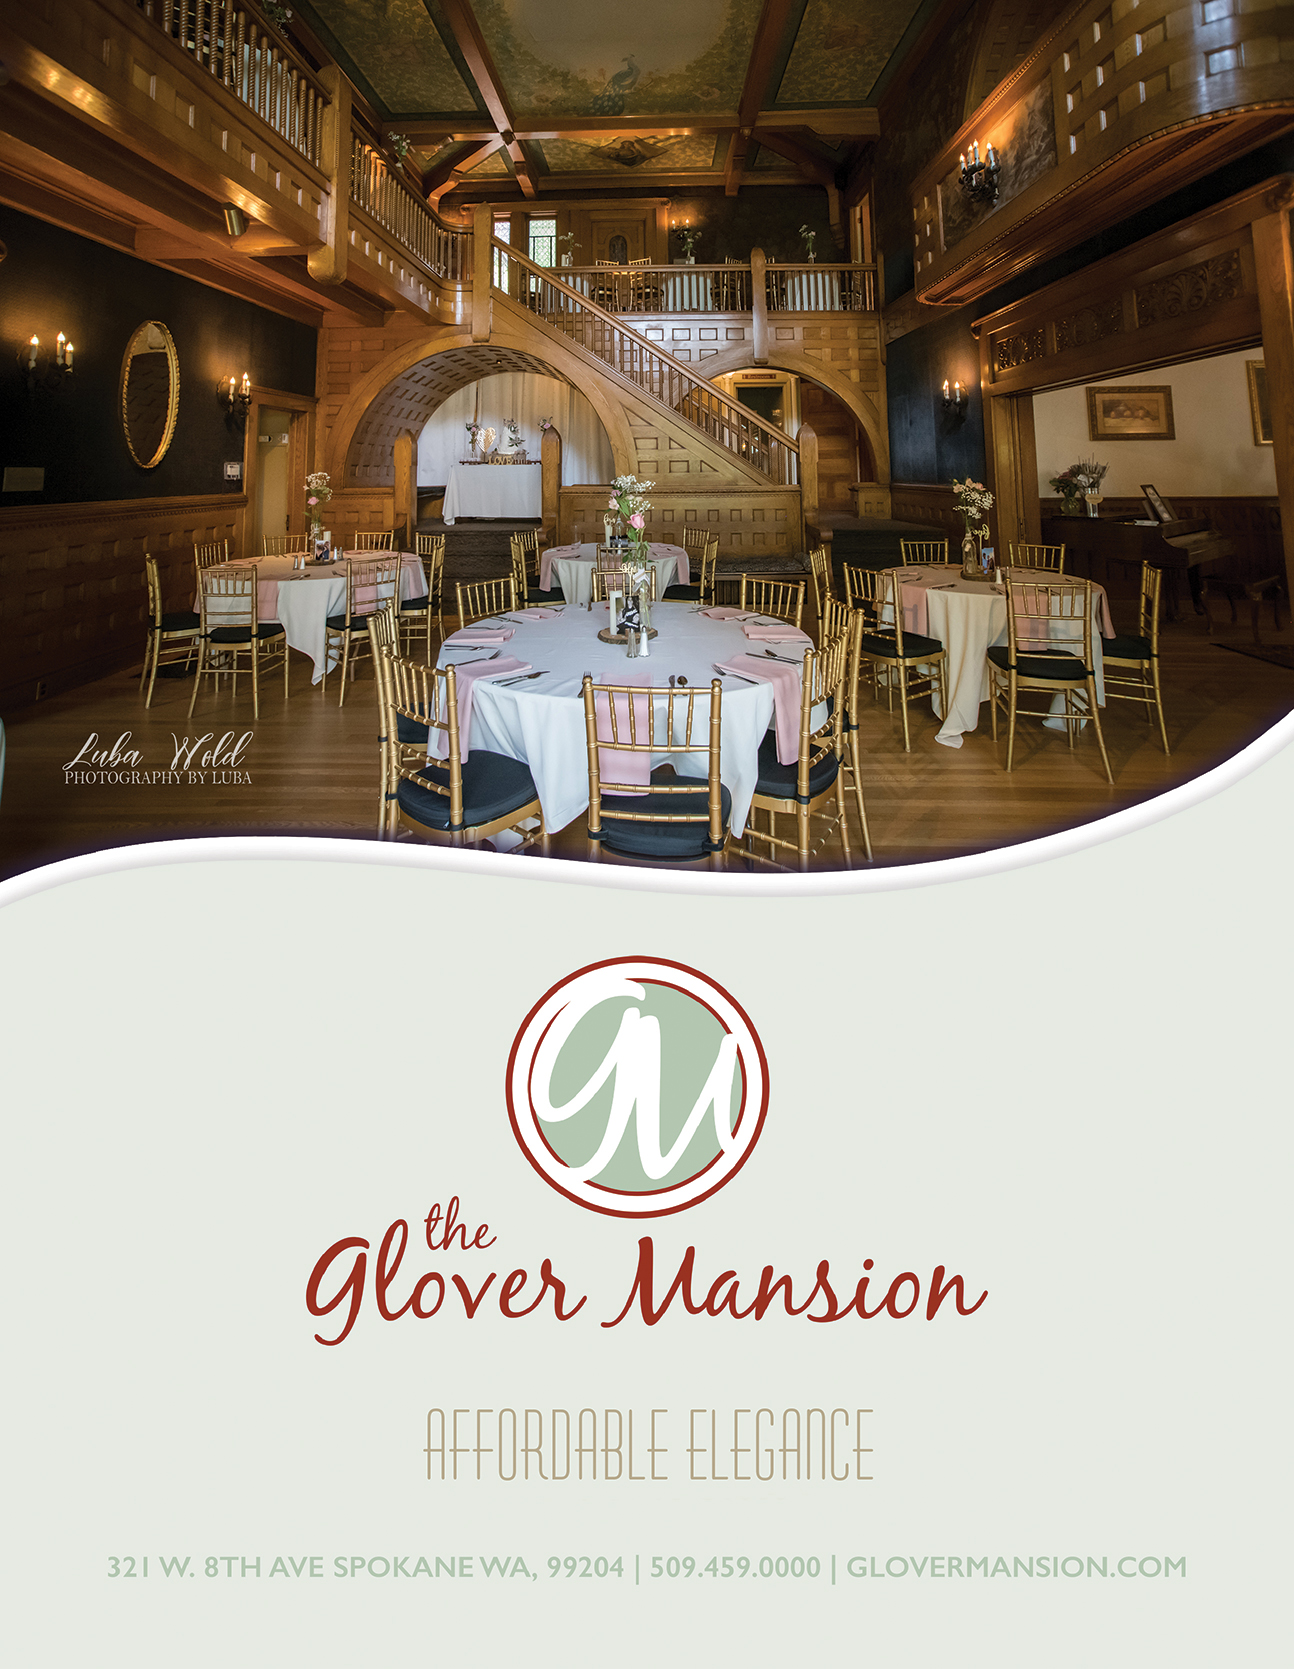 Glover Mansion WRG Ad 2019 WEB